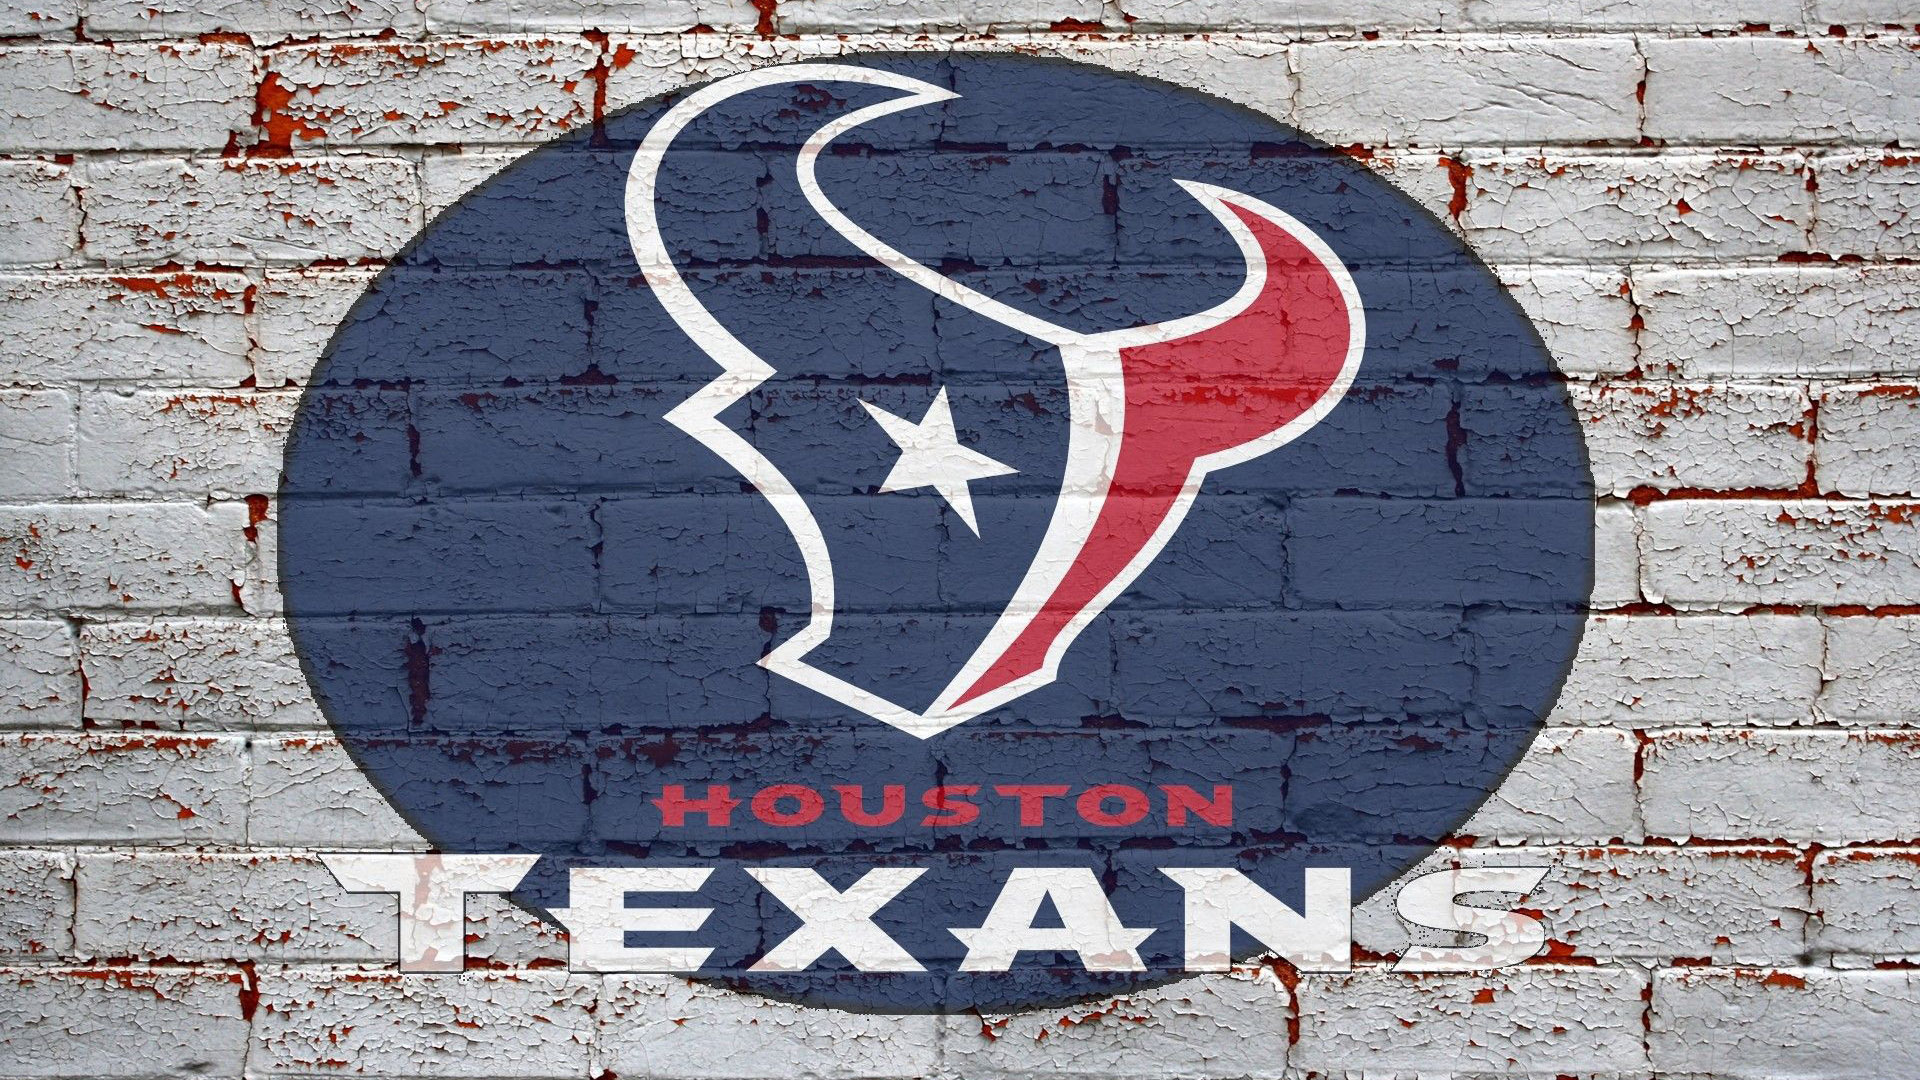 Houston Texans Hd Desktop